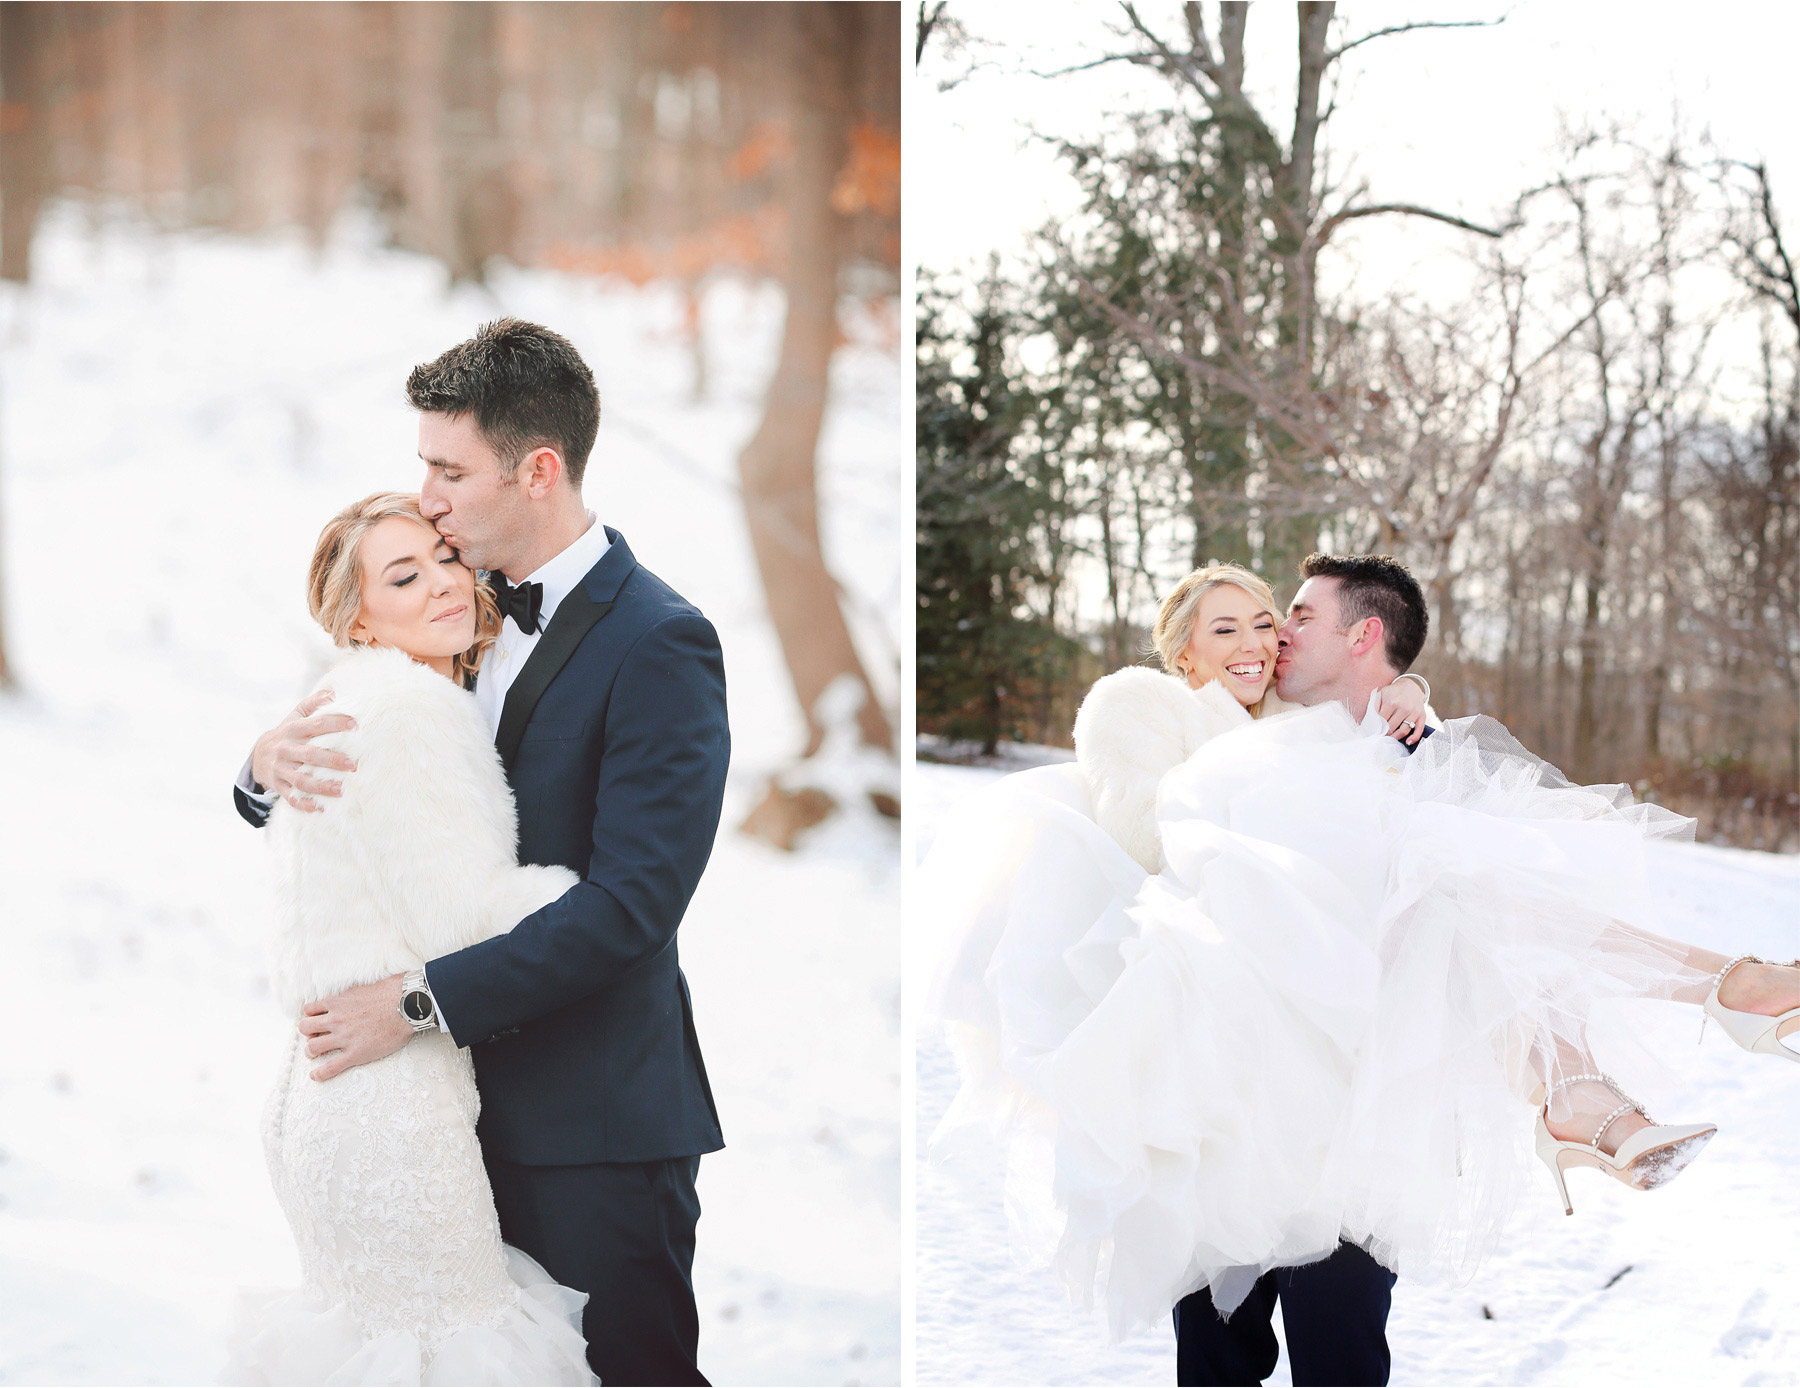 09-Watchung-New-Jersey-Wedding-Photographer-by-Andrew-Vick-Photography-Winter-Saint-Marys-Chuch-Stony-Hill-First-Meeting-Look-Bride-Groom-Fur-Coat-Embrace-Kiss-Lift-Alexia-and-Justin.jpg